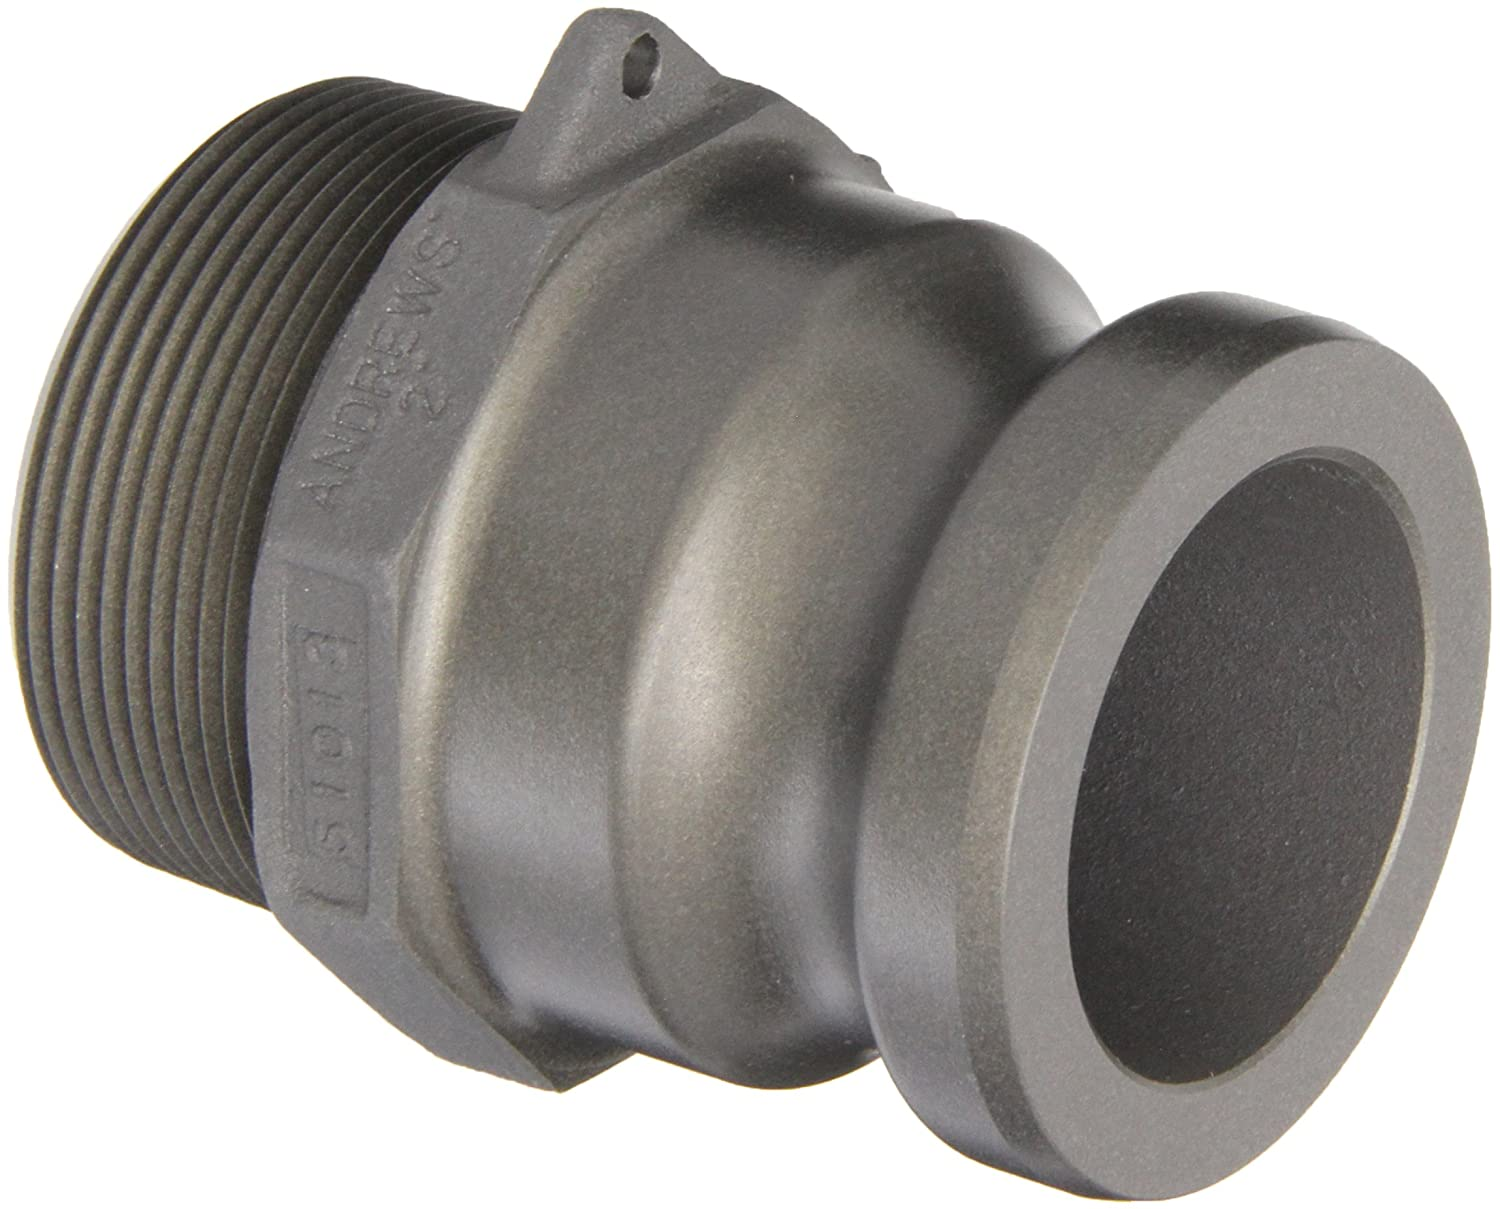 Dixon Valve 200-F-ALH Aluminum Hard Coat Boss-Lock Type F Cam and Groove Fitting 2 Male Adapter x 2 NPT Male 2 Male Adapter x 2 NPT Male Dixon Valve /& Coupling